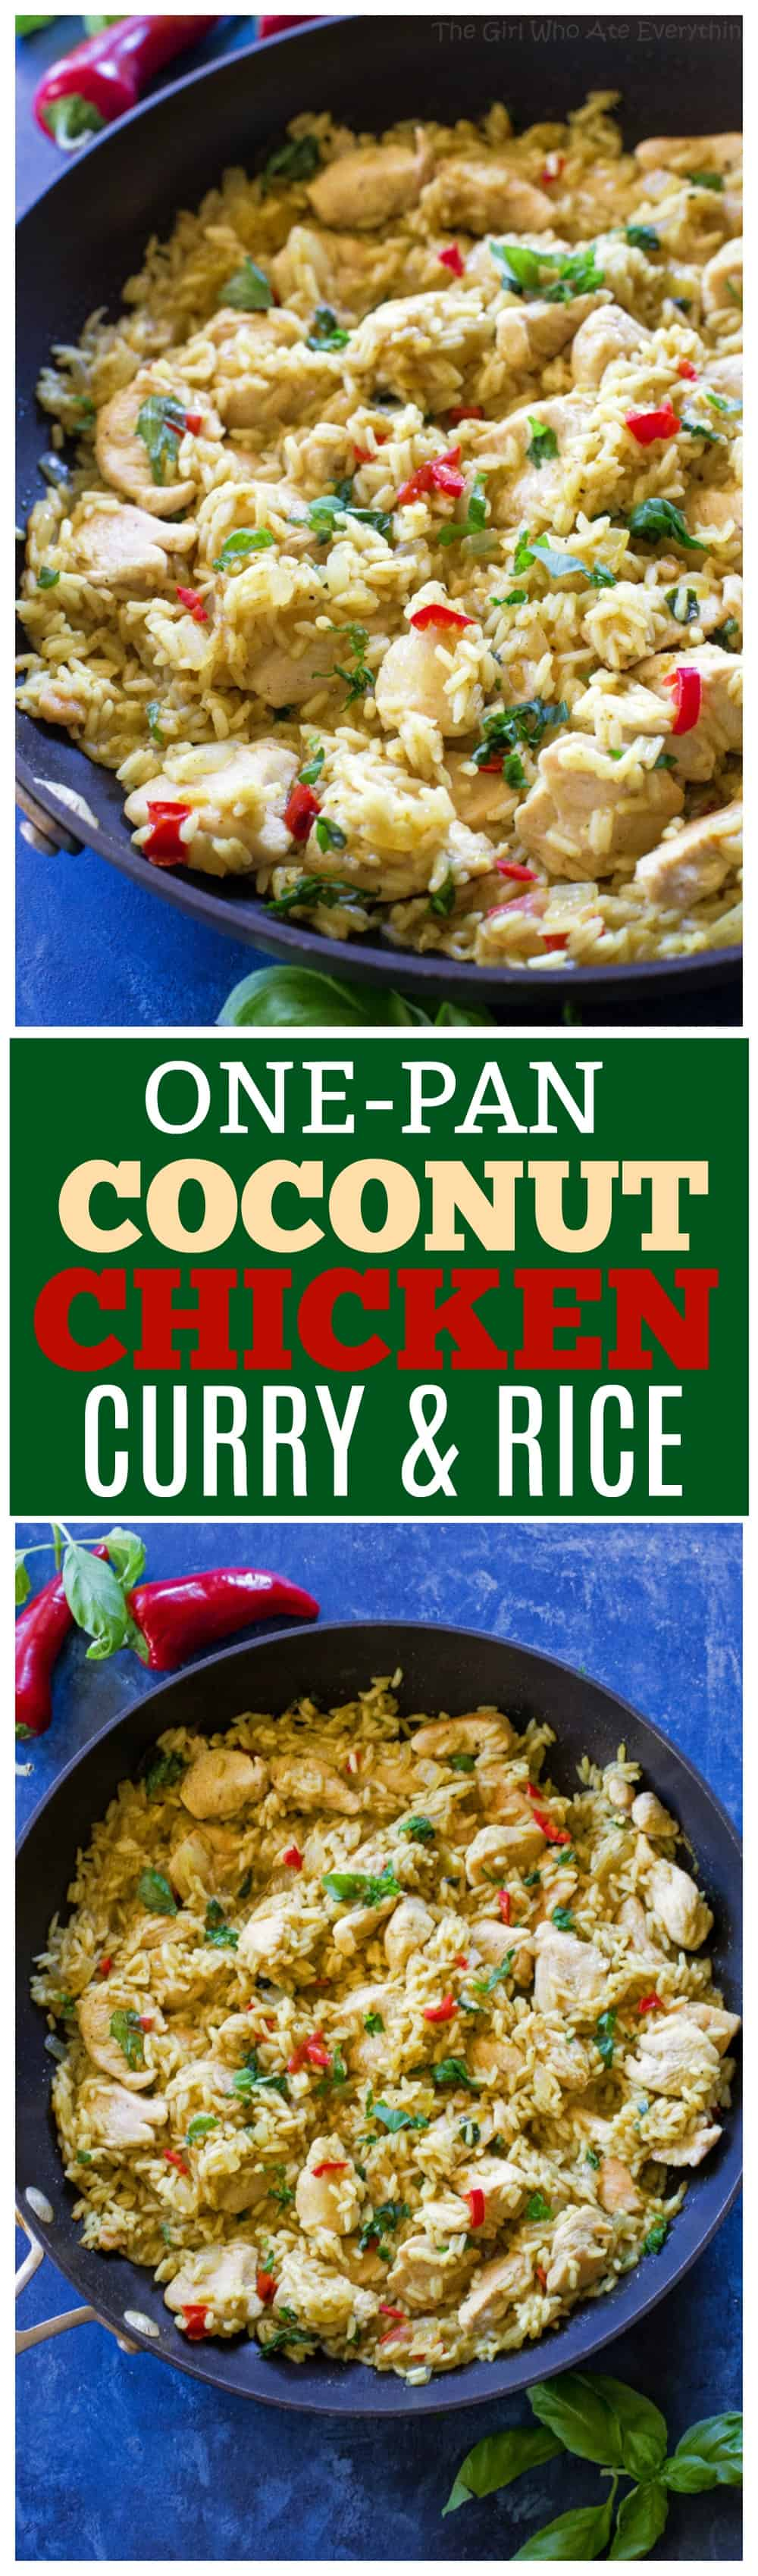 One-Pan Coconut Chicken Curry and Rice